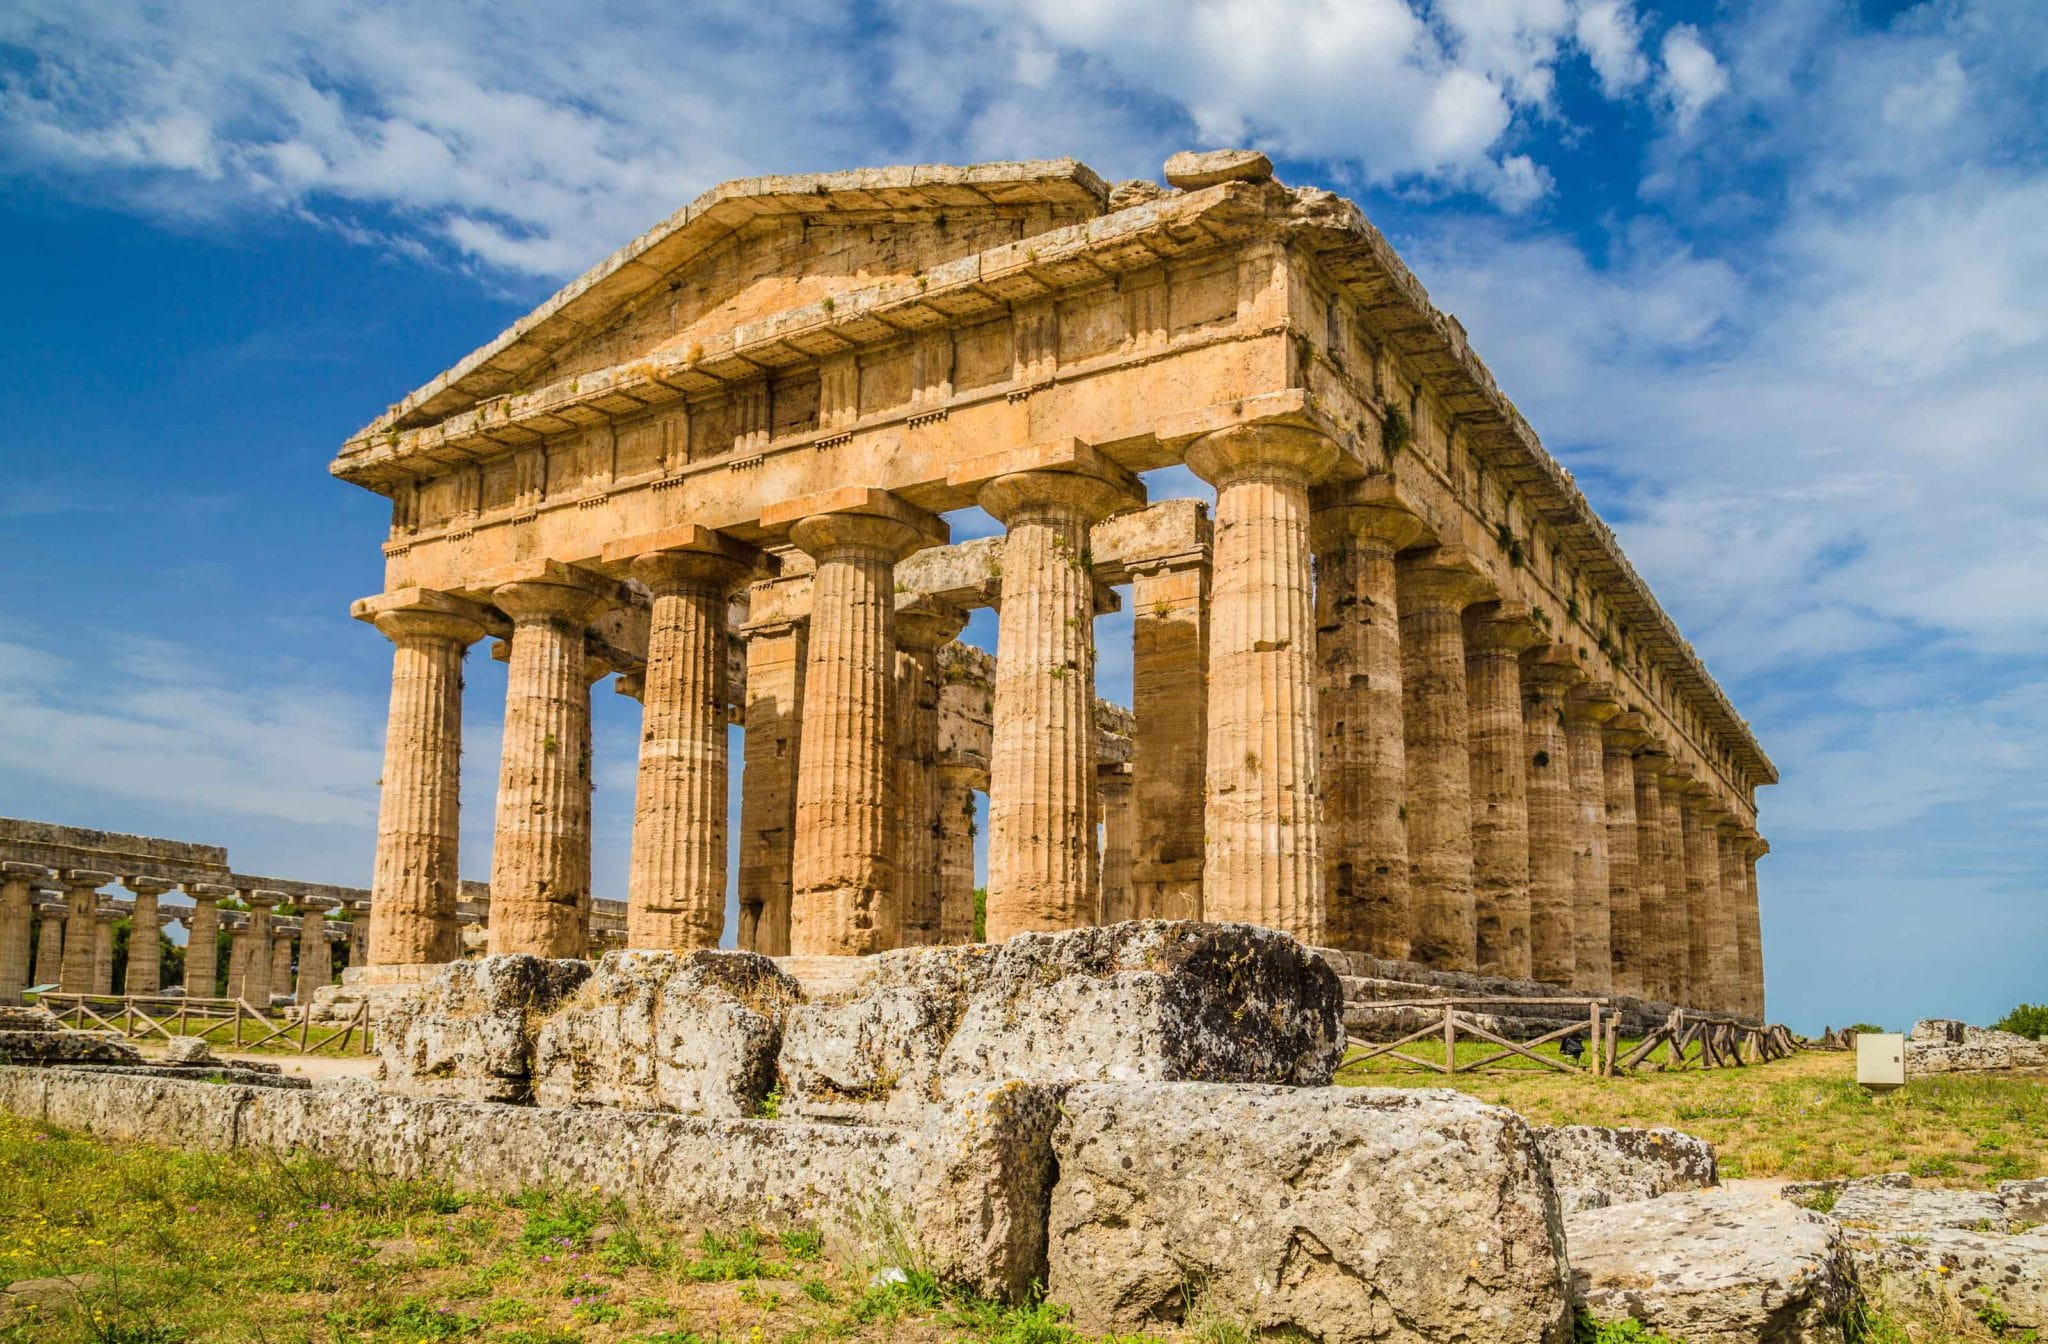 The temple of Hera at Paestum